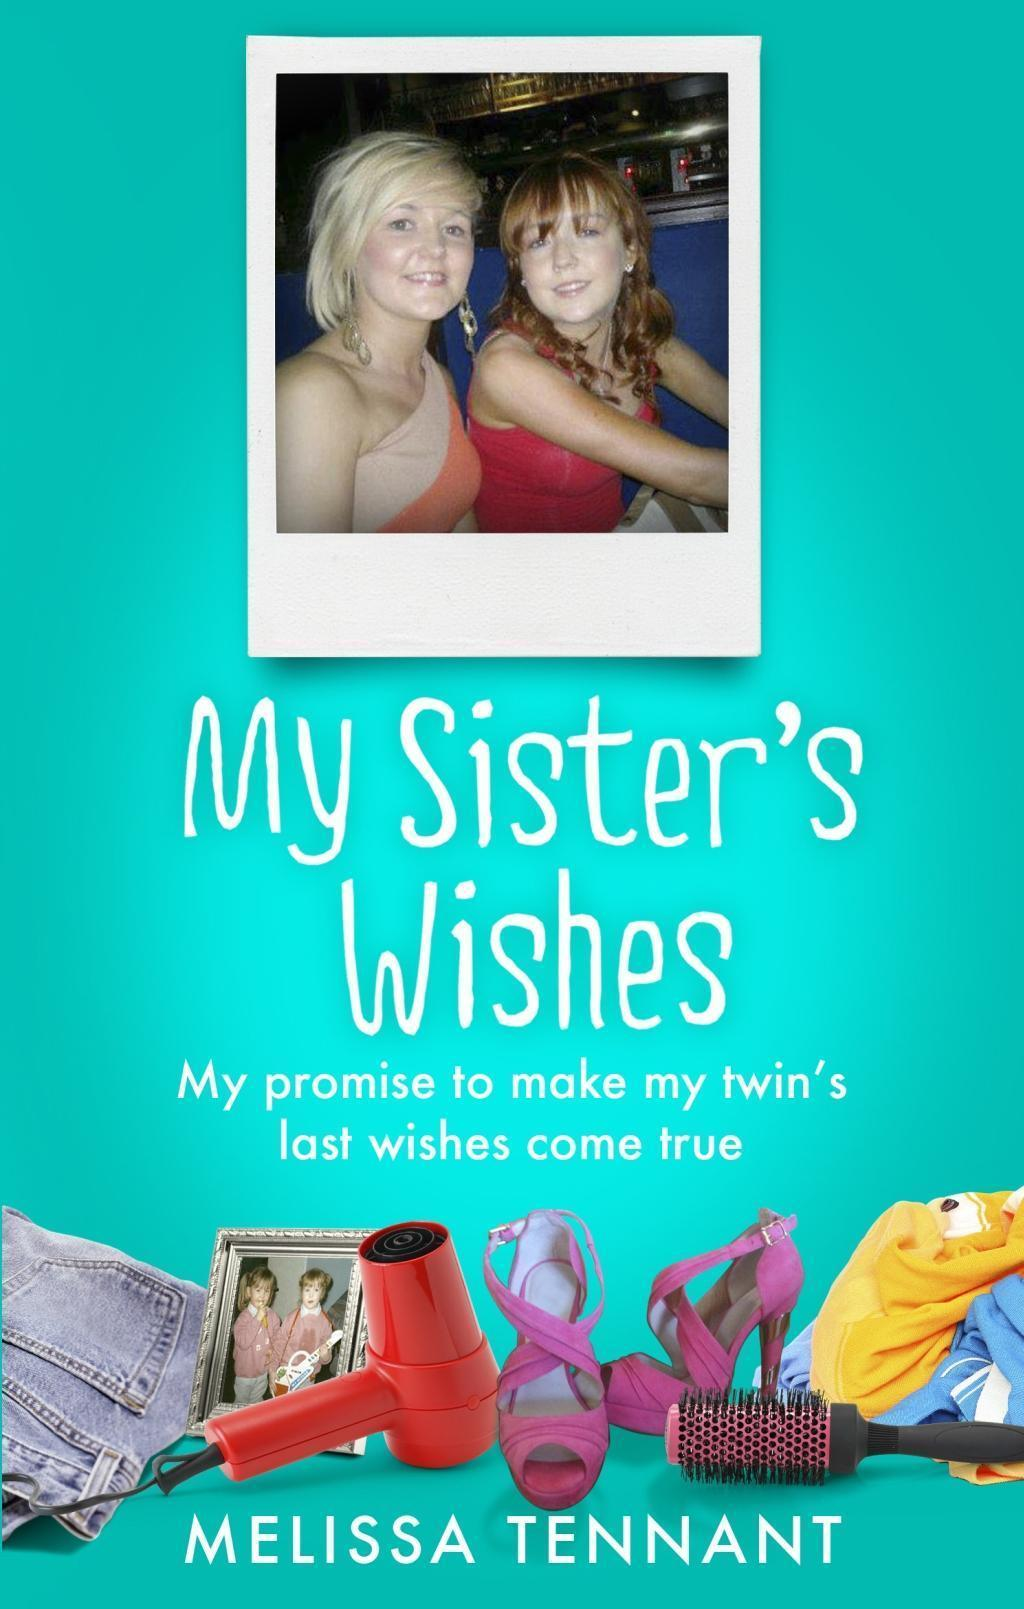 My Sister's Wishes